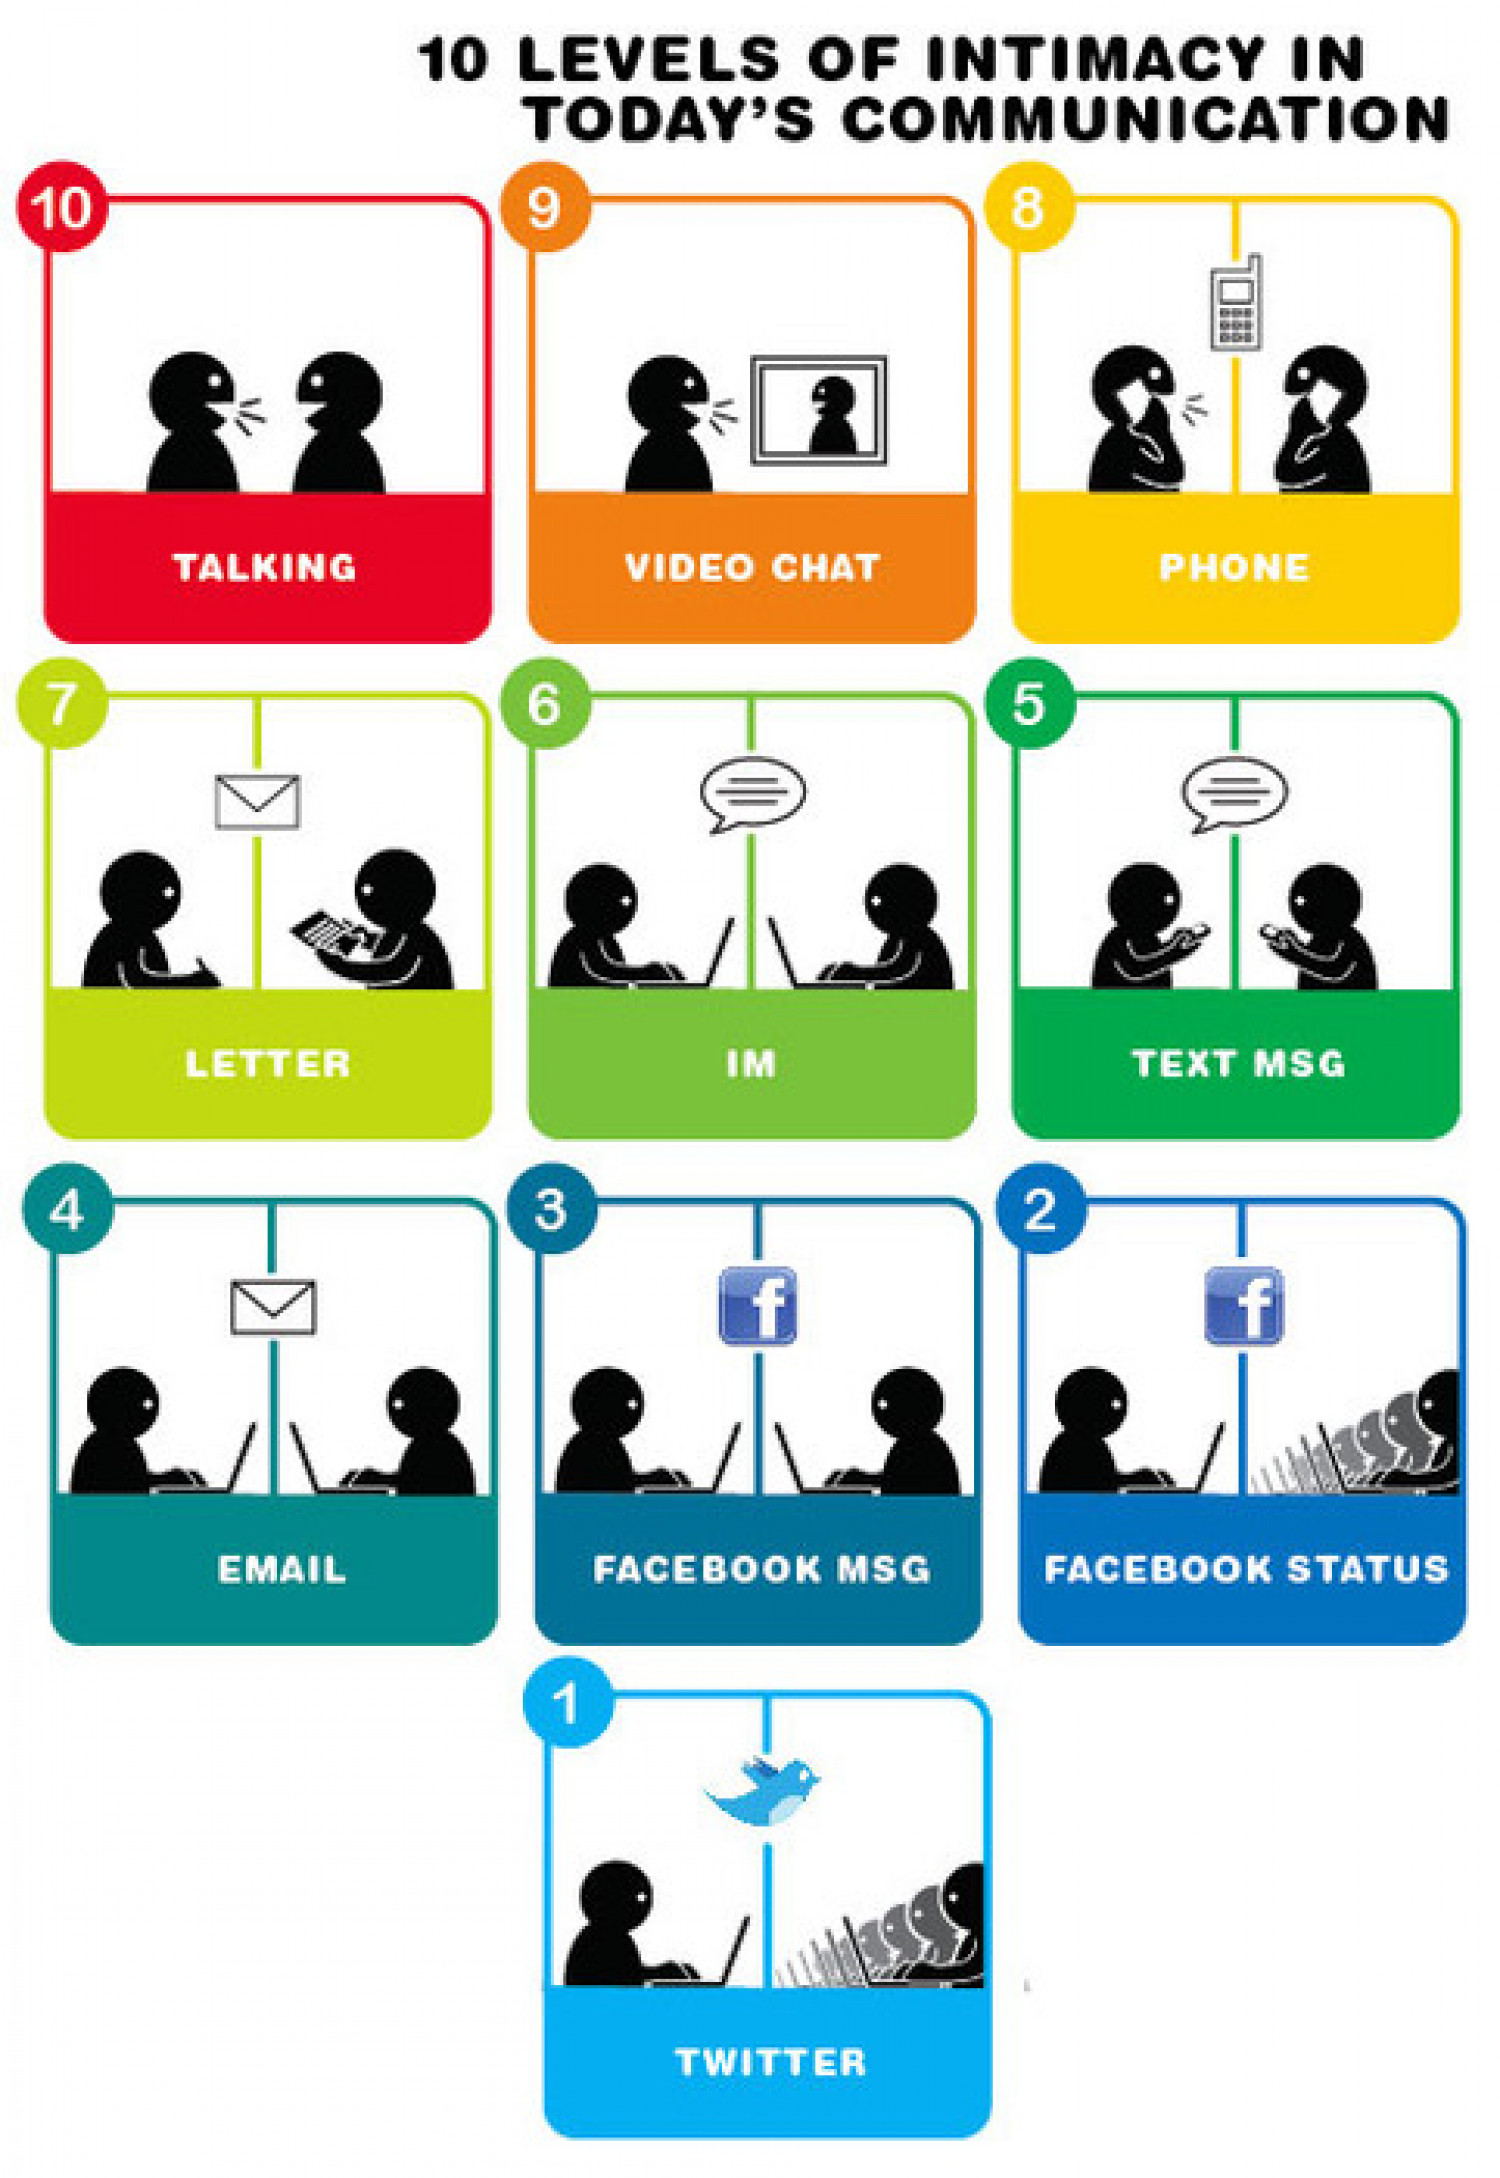 10 Levels of Intimacy in Today's Communication Infographic